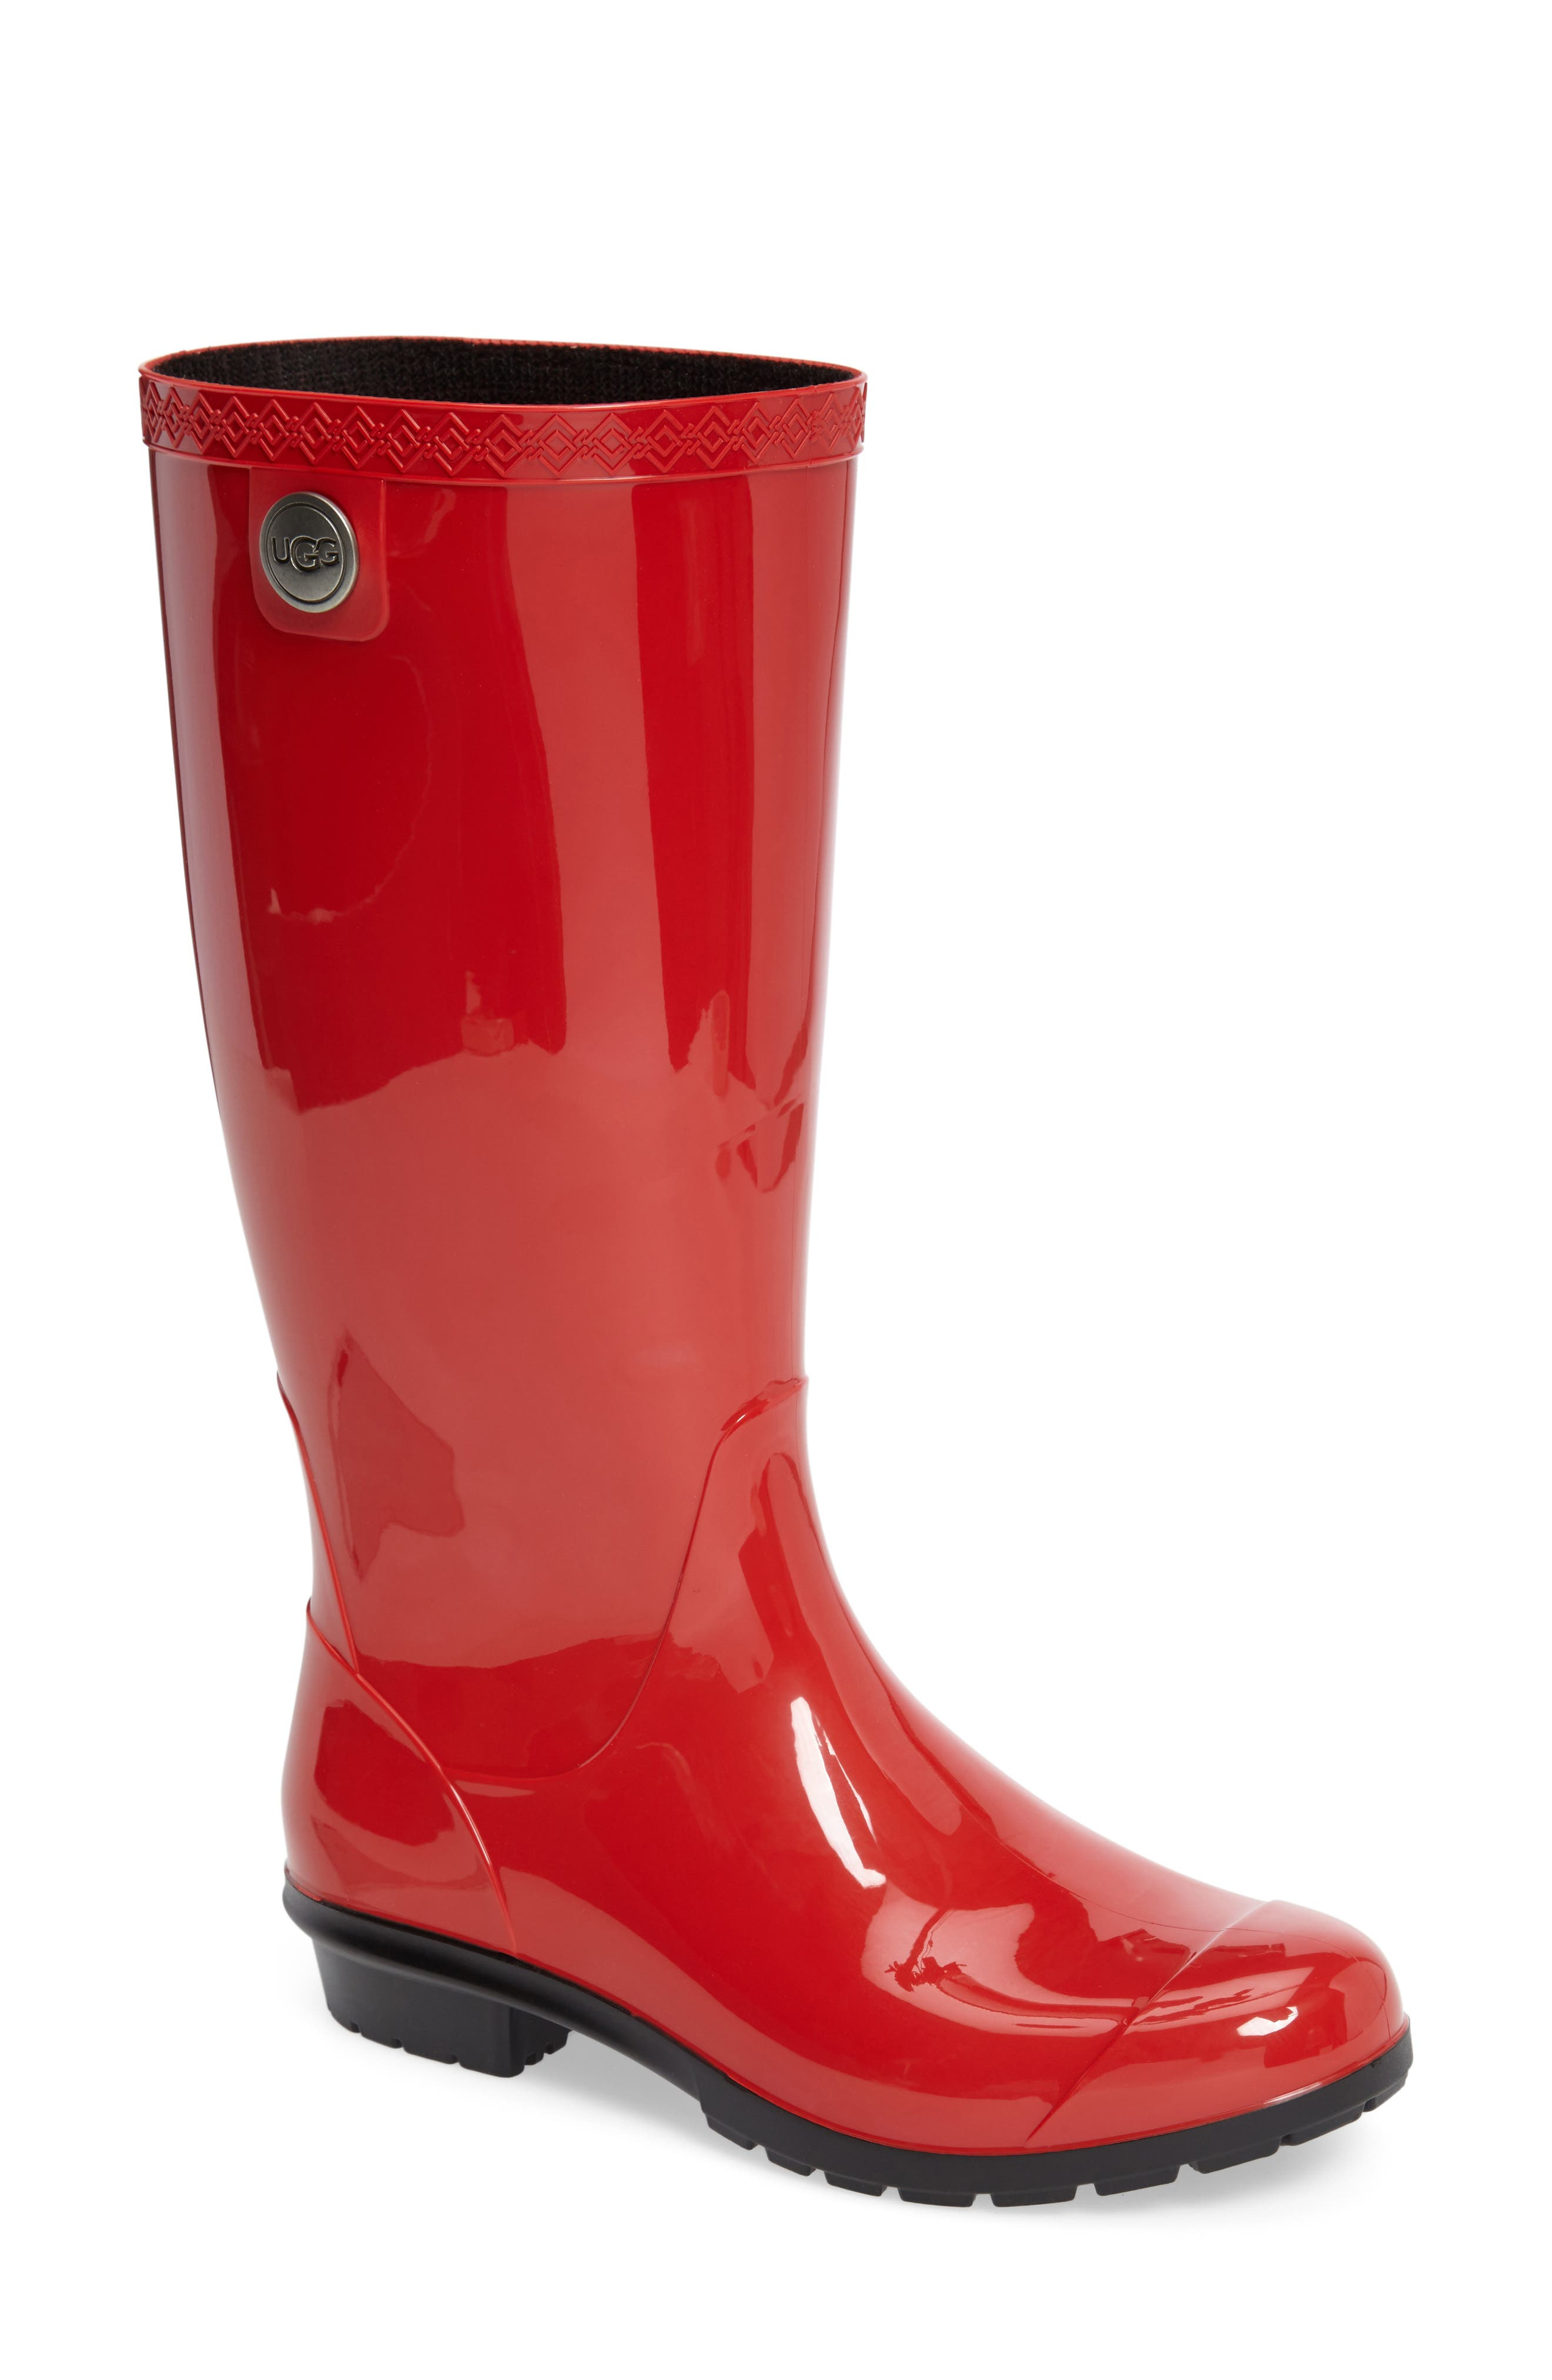 Alternate Image 1 Selected - UGG® 'Shaye' Rain Boot (Women)